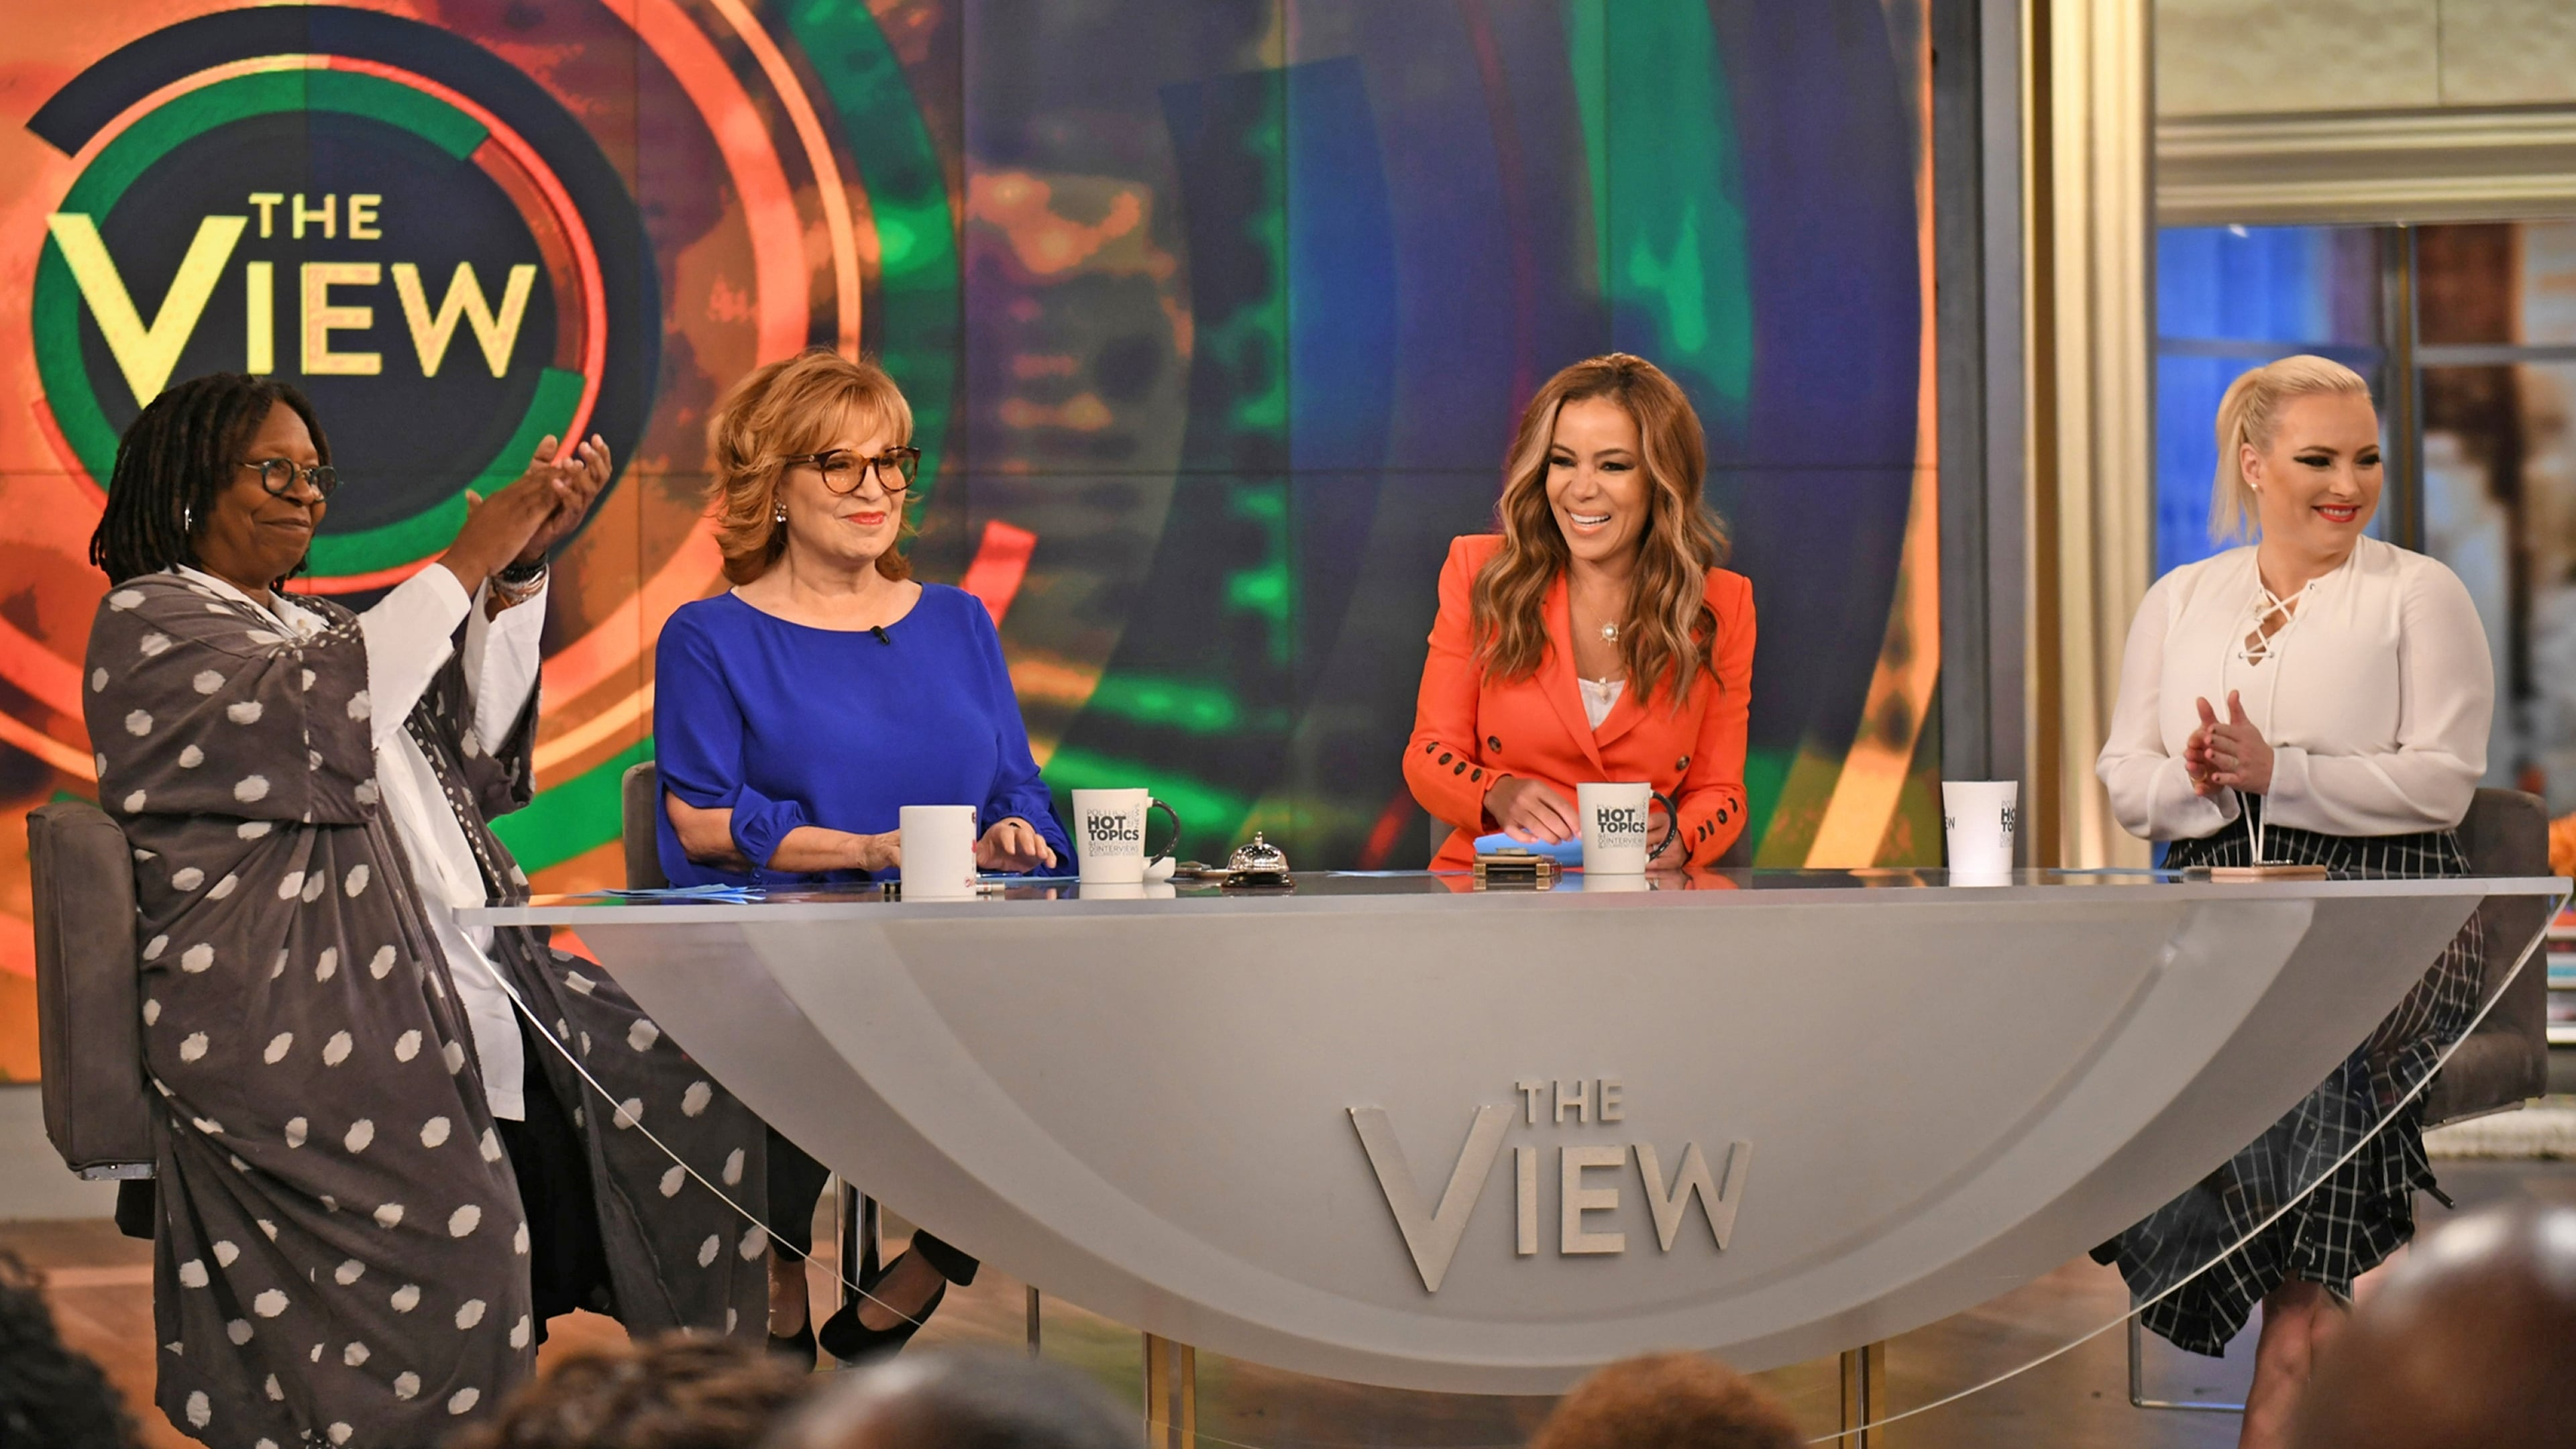 The View - Season 8 Episode 332 : Season 8, Episode 331